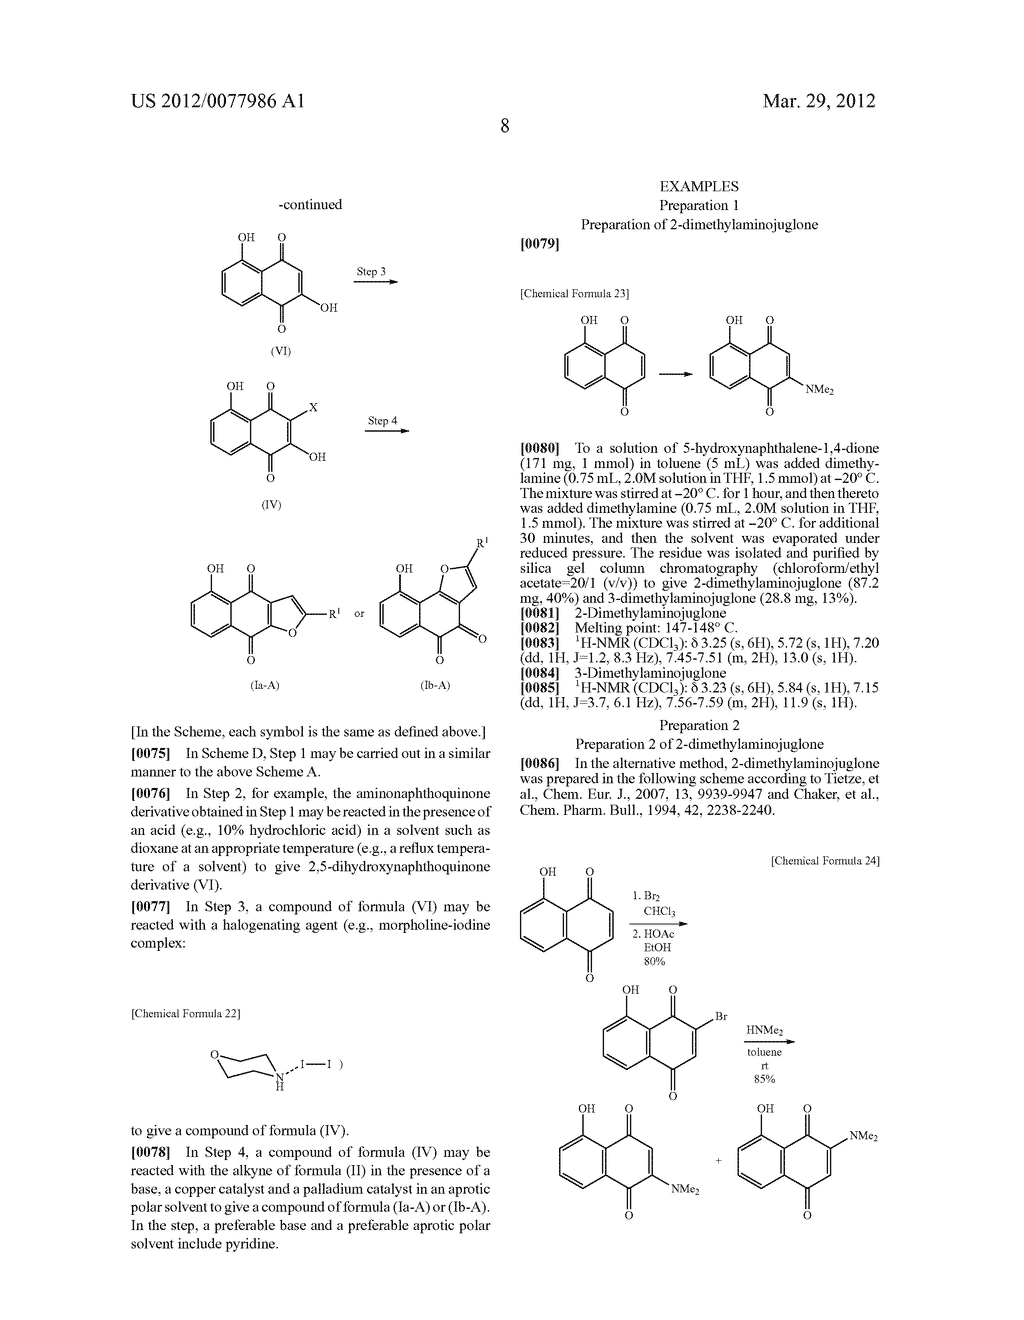 NOVEL PREPARATION OF ANTICANCER-ACTIVE TRICYCLIC COMPOUNDS VIA ALKYNE     COUPLING REACTION - diagram, schematic, and image 09